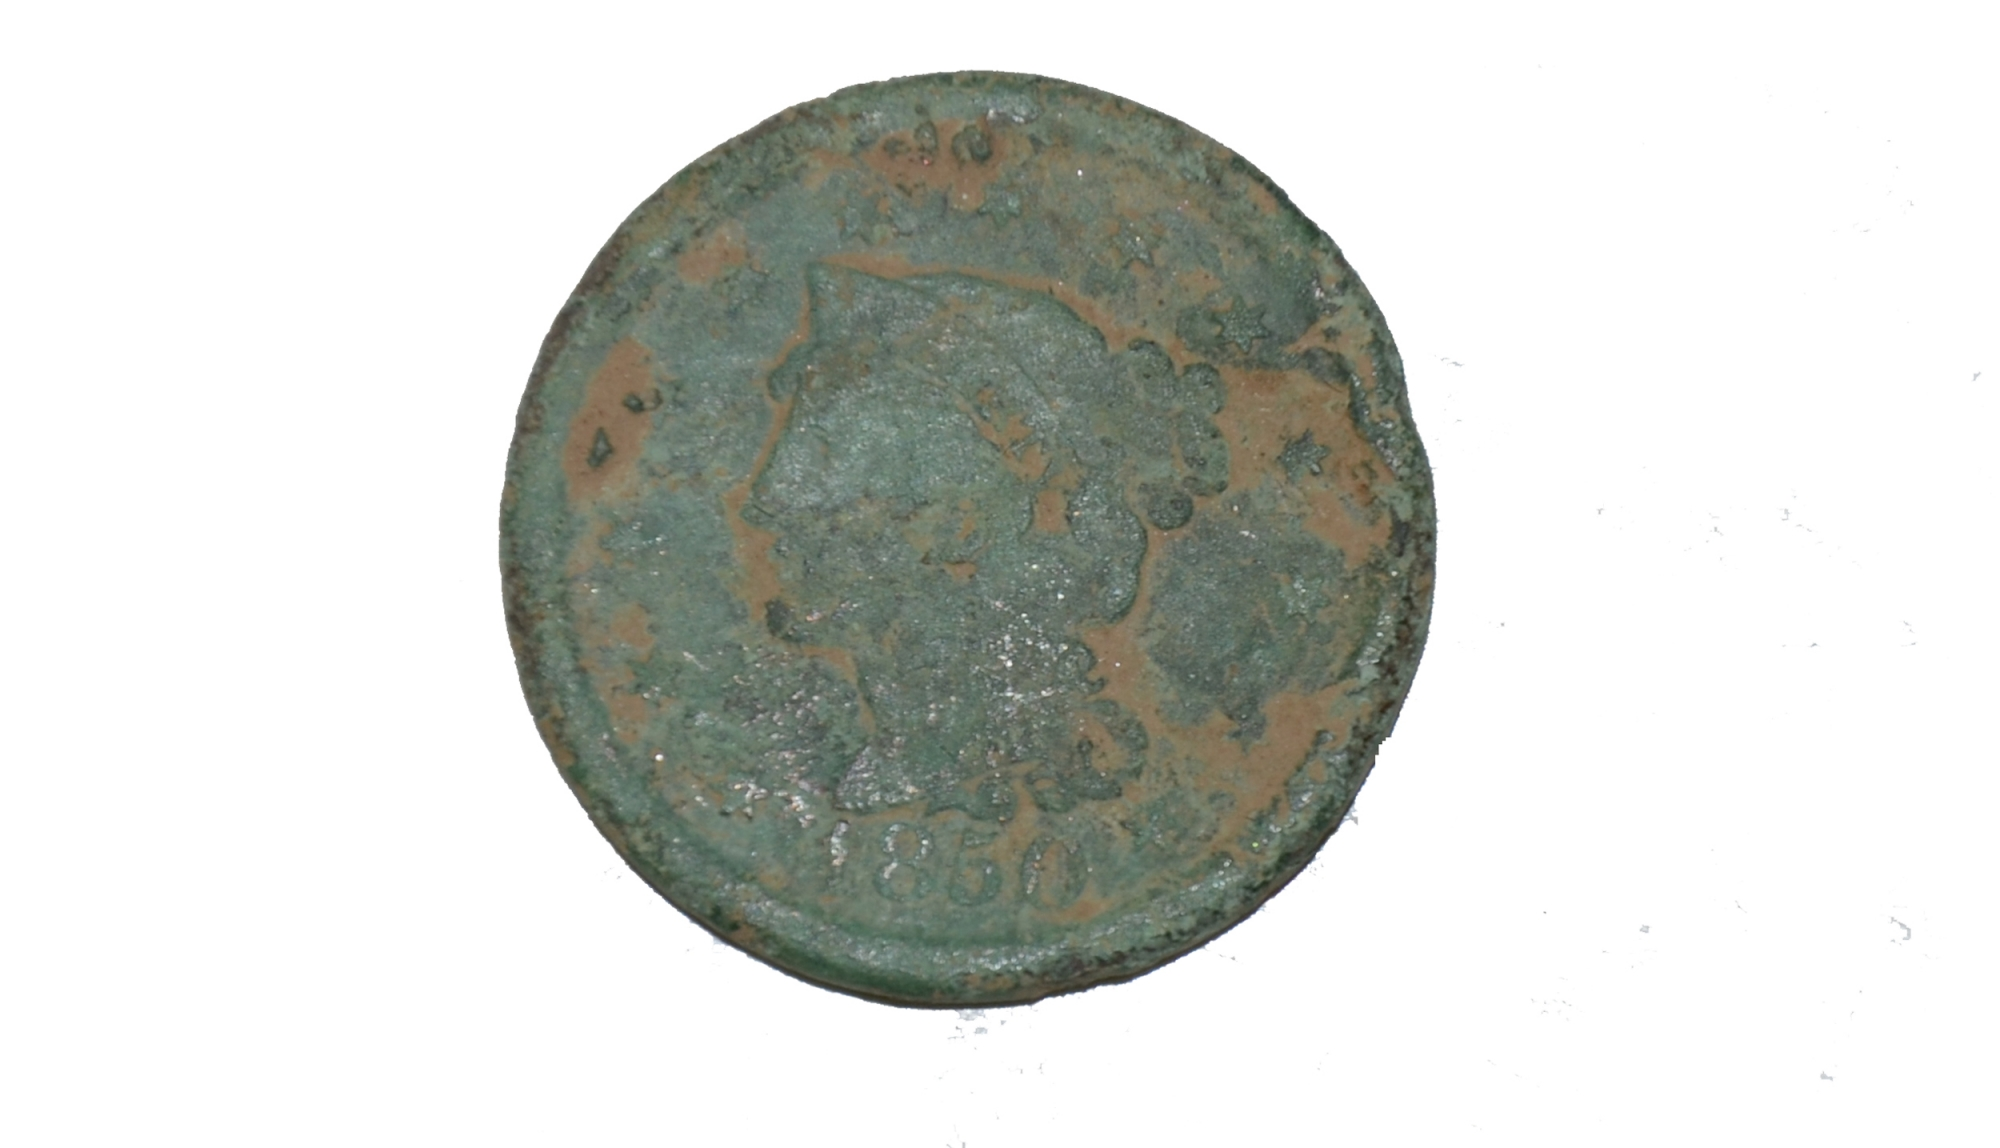 LADY LIBERTY PENNY, DATED 1850, RECOVERED FROM ROSE FARM, GETTYSBURG